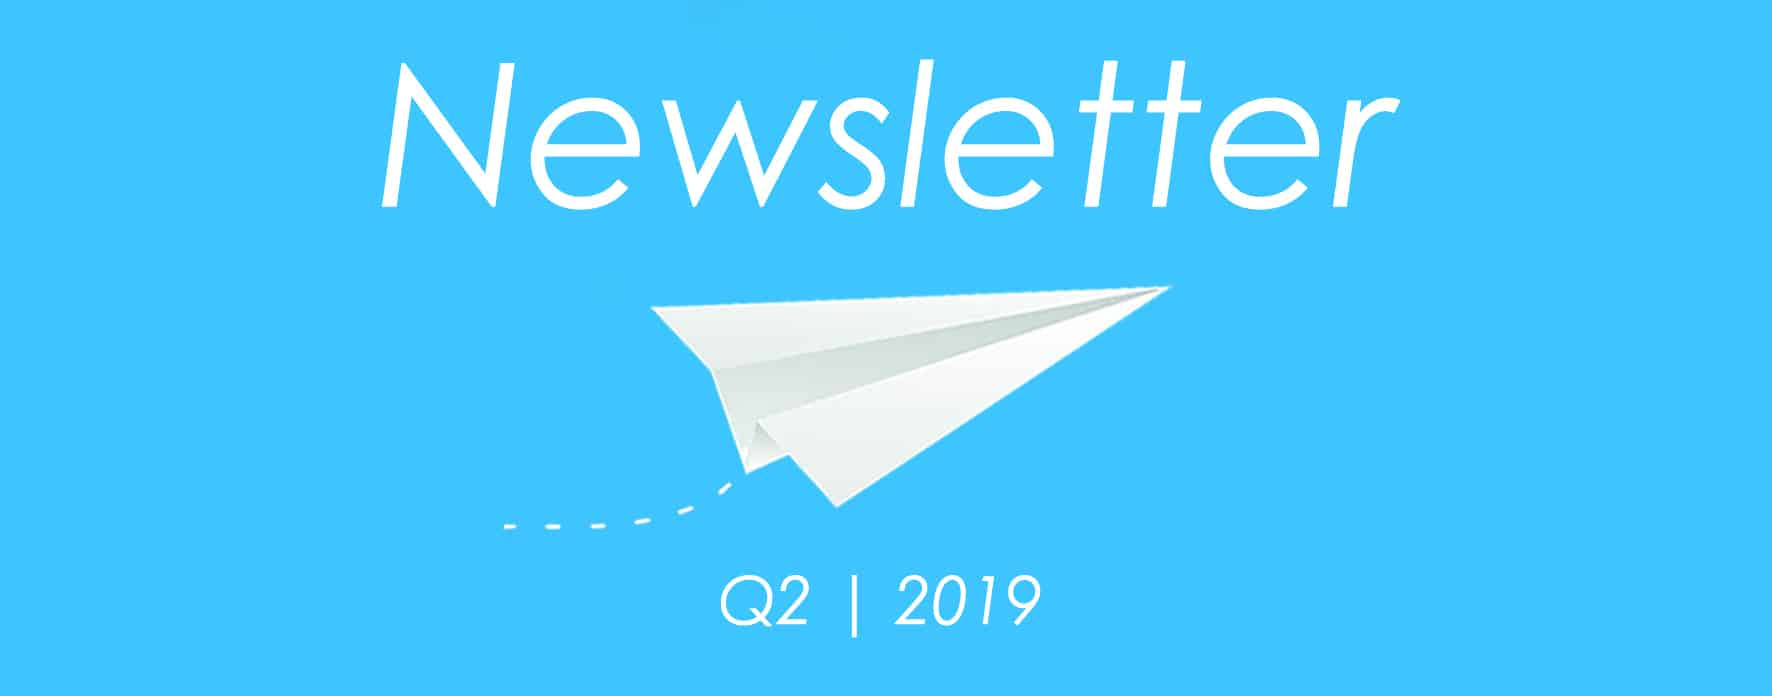 Newsletter Website Q2